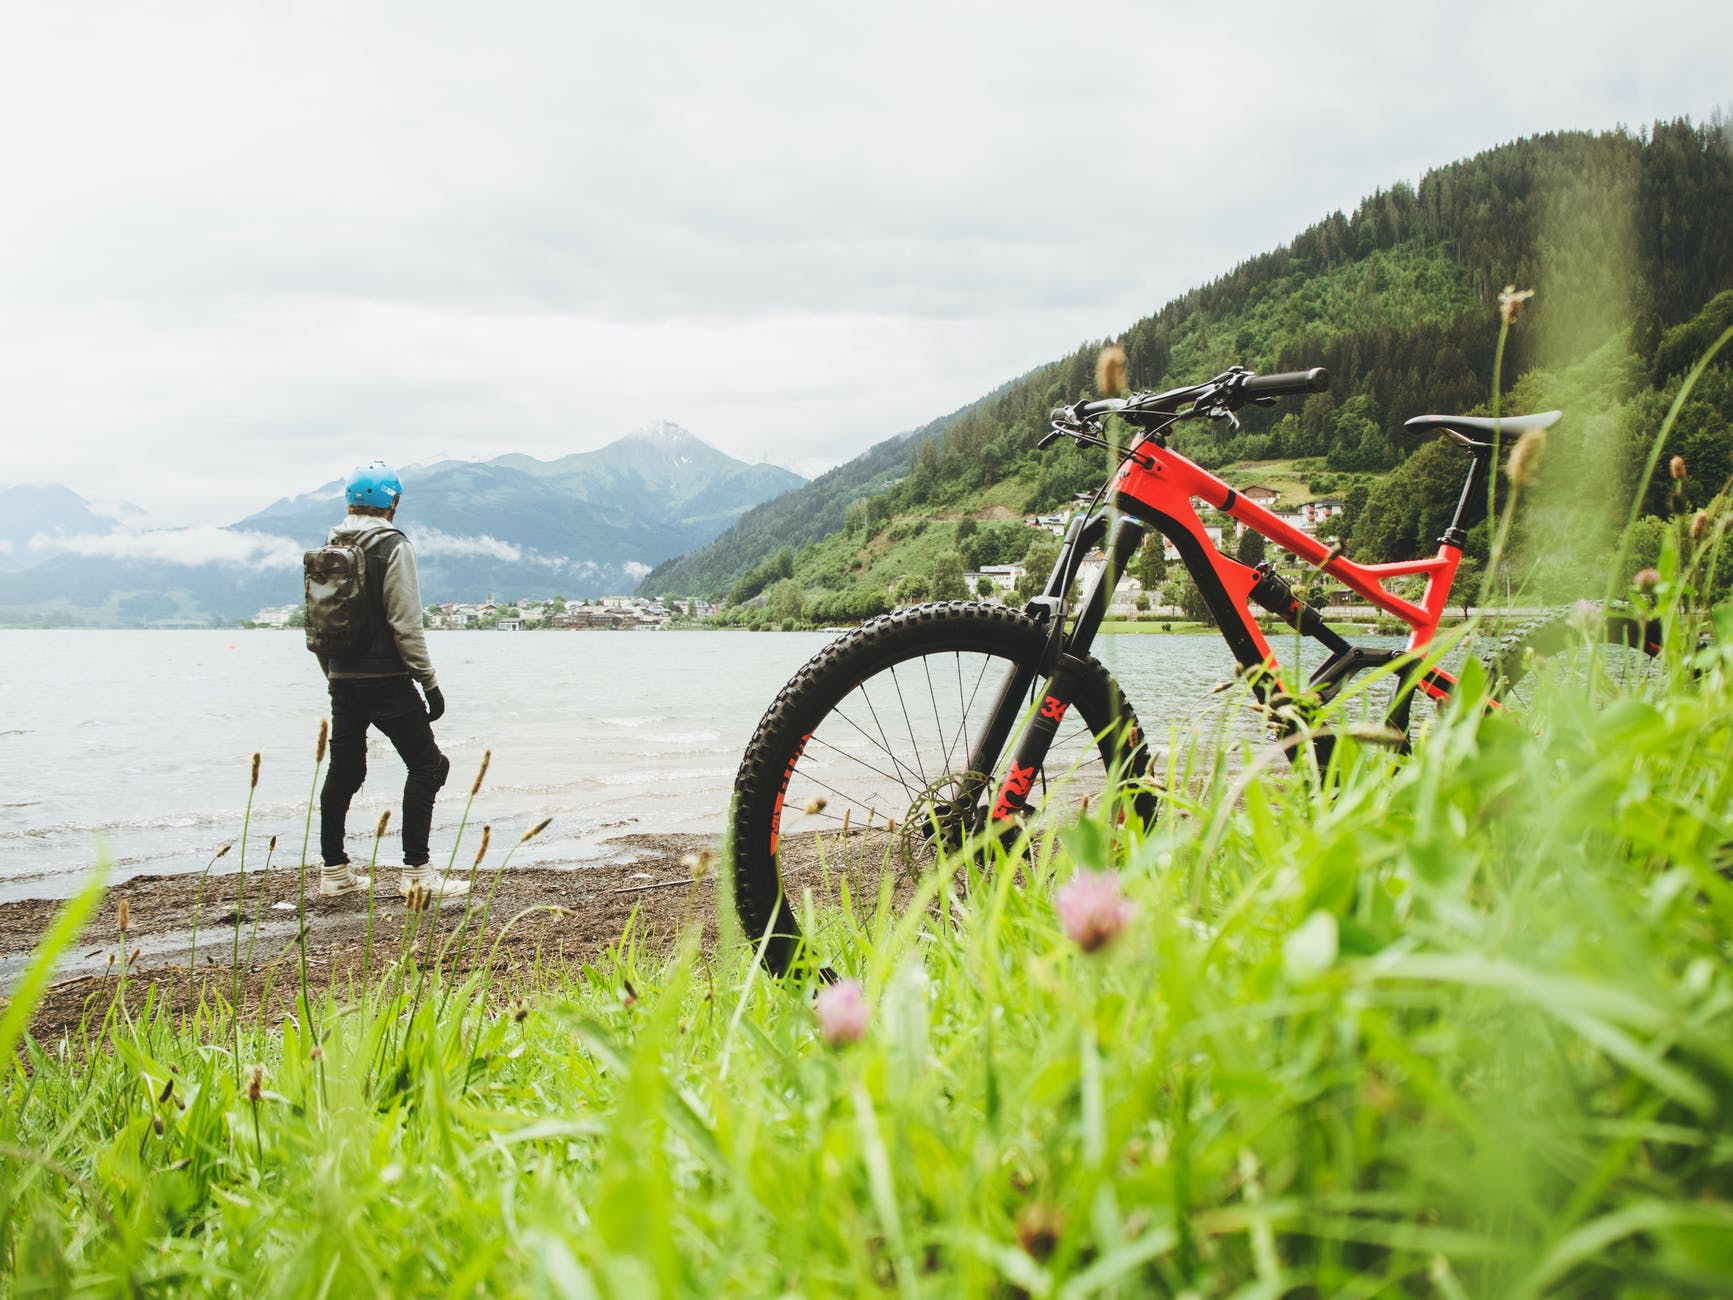 Man and bike near a body of water